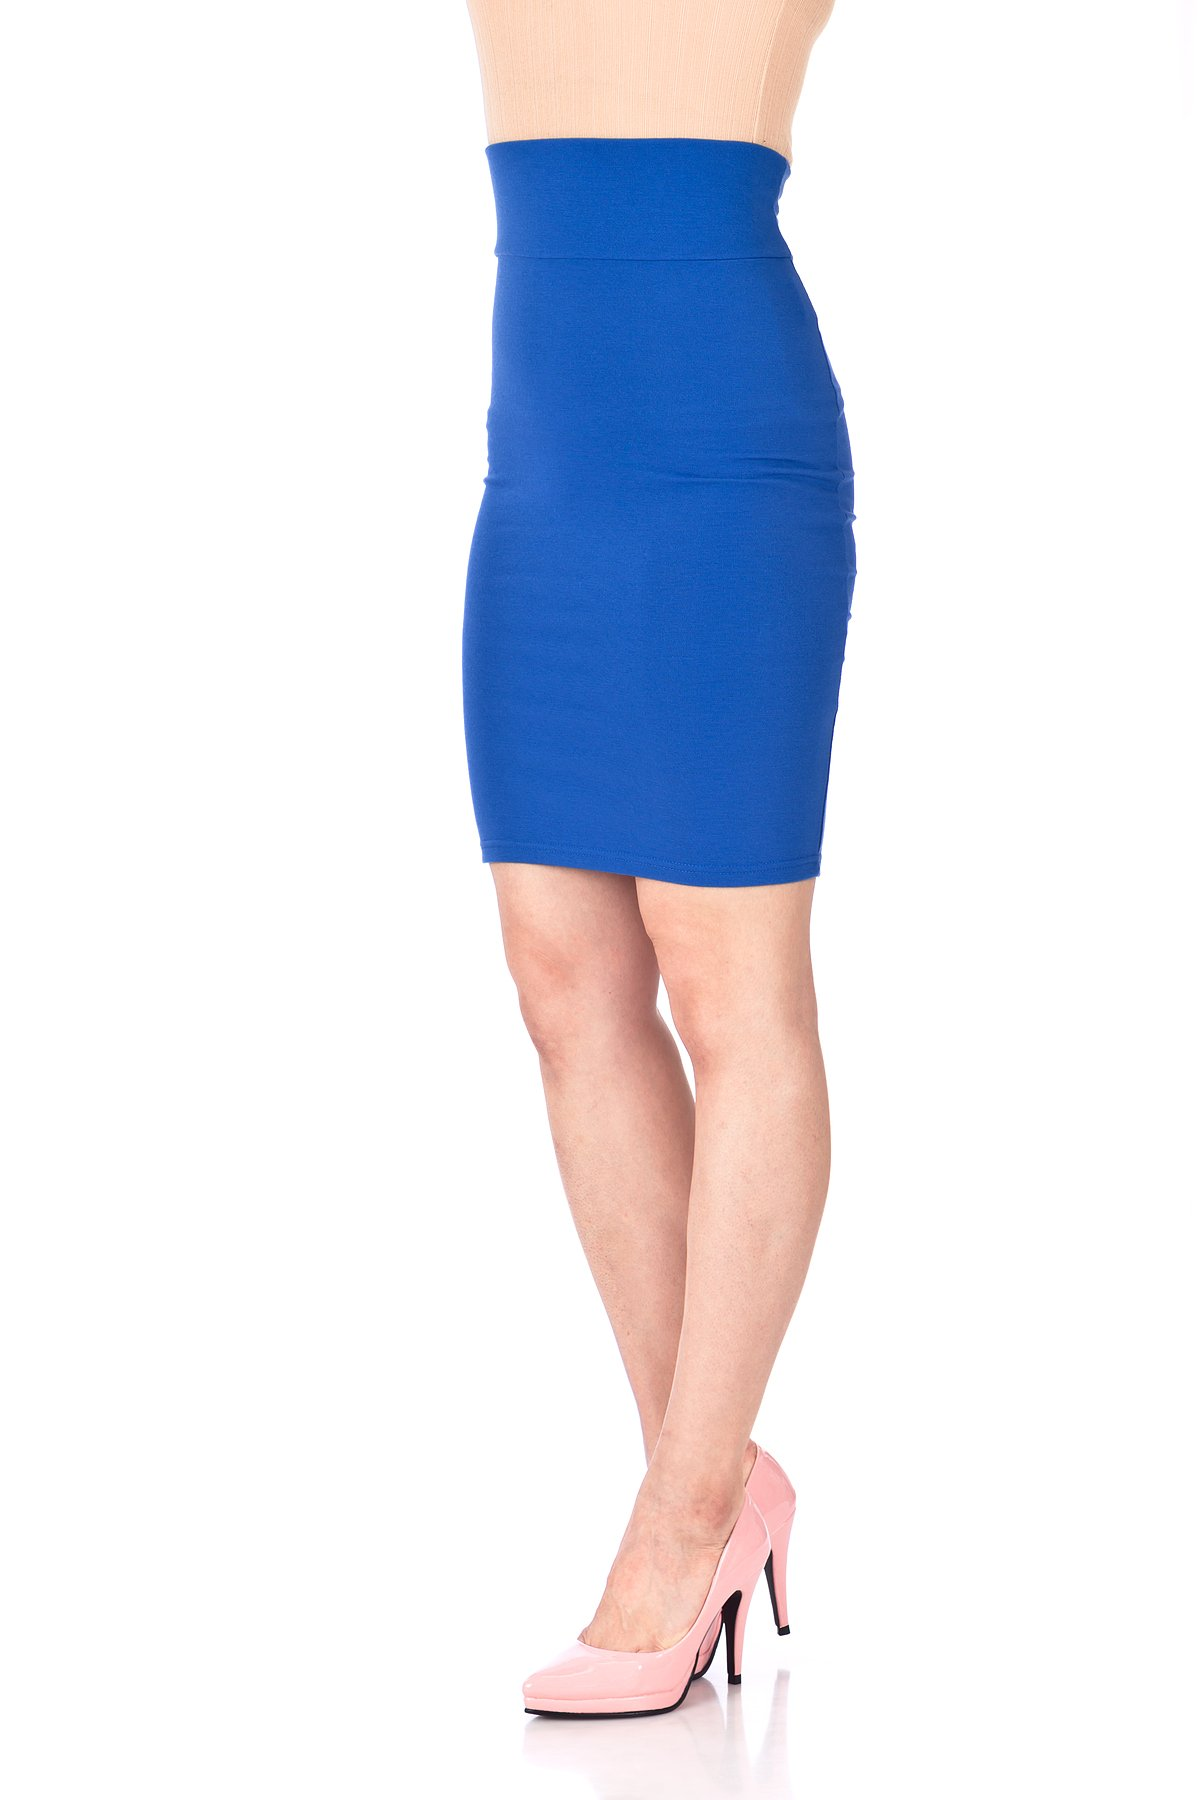 Every Occasion Stretch Pull on Wide High Waist Bodycon Pencil Knee Length Midi Skirt Royal Blue 06